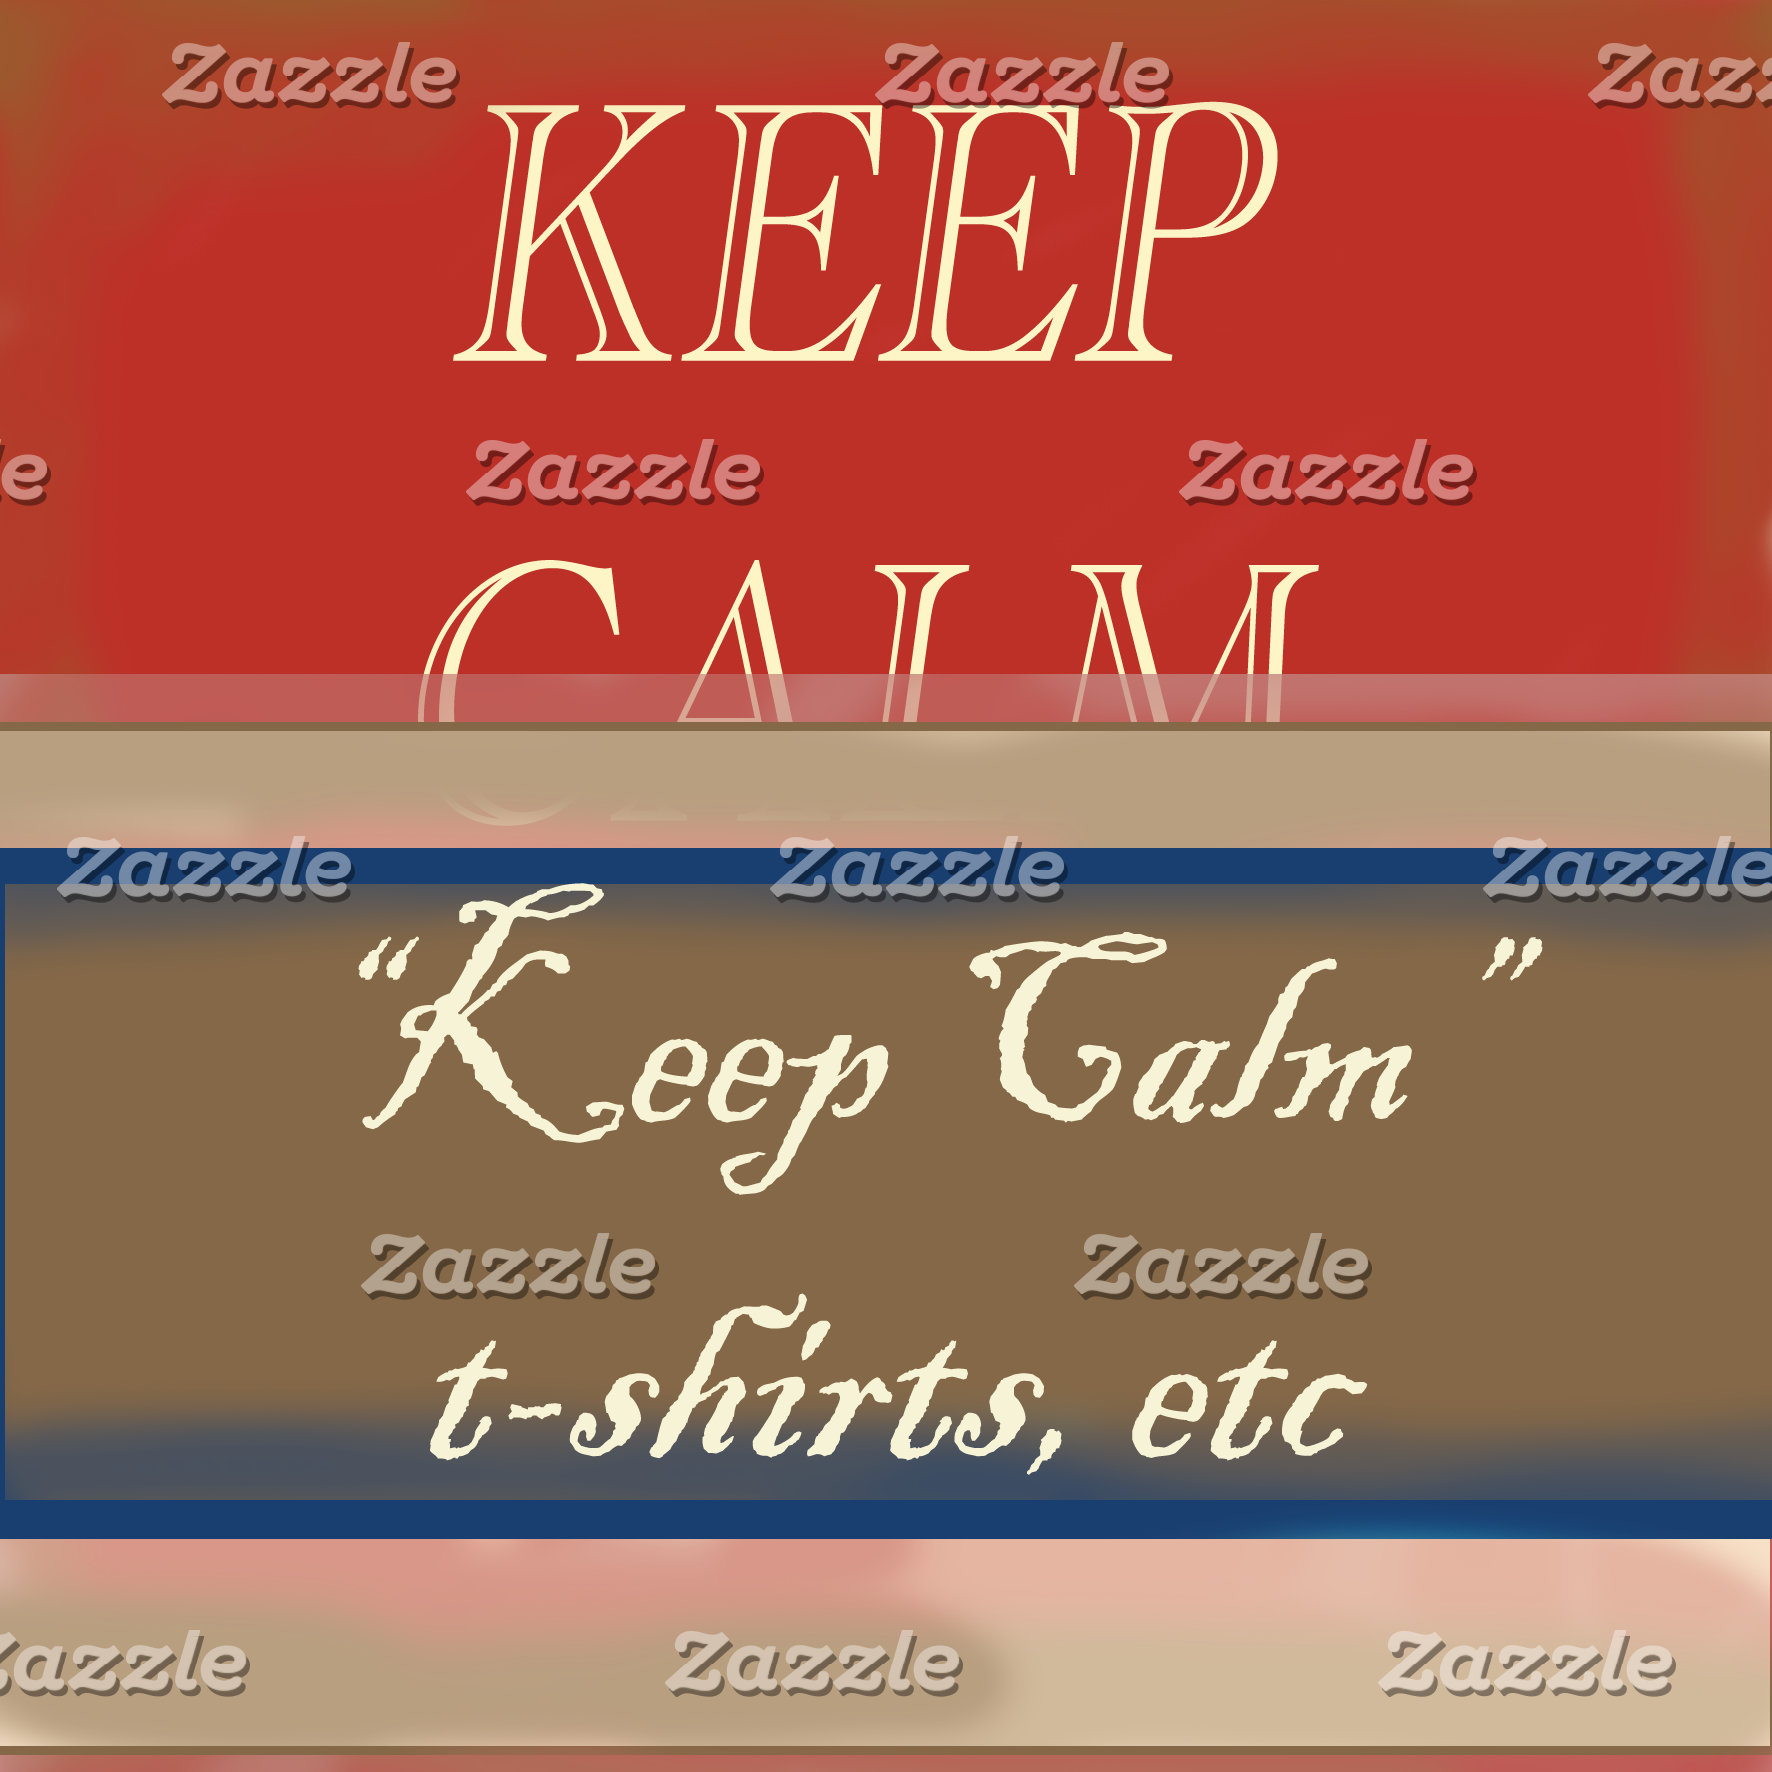 Keep Calm, t-shirts, postcards etc